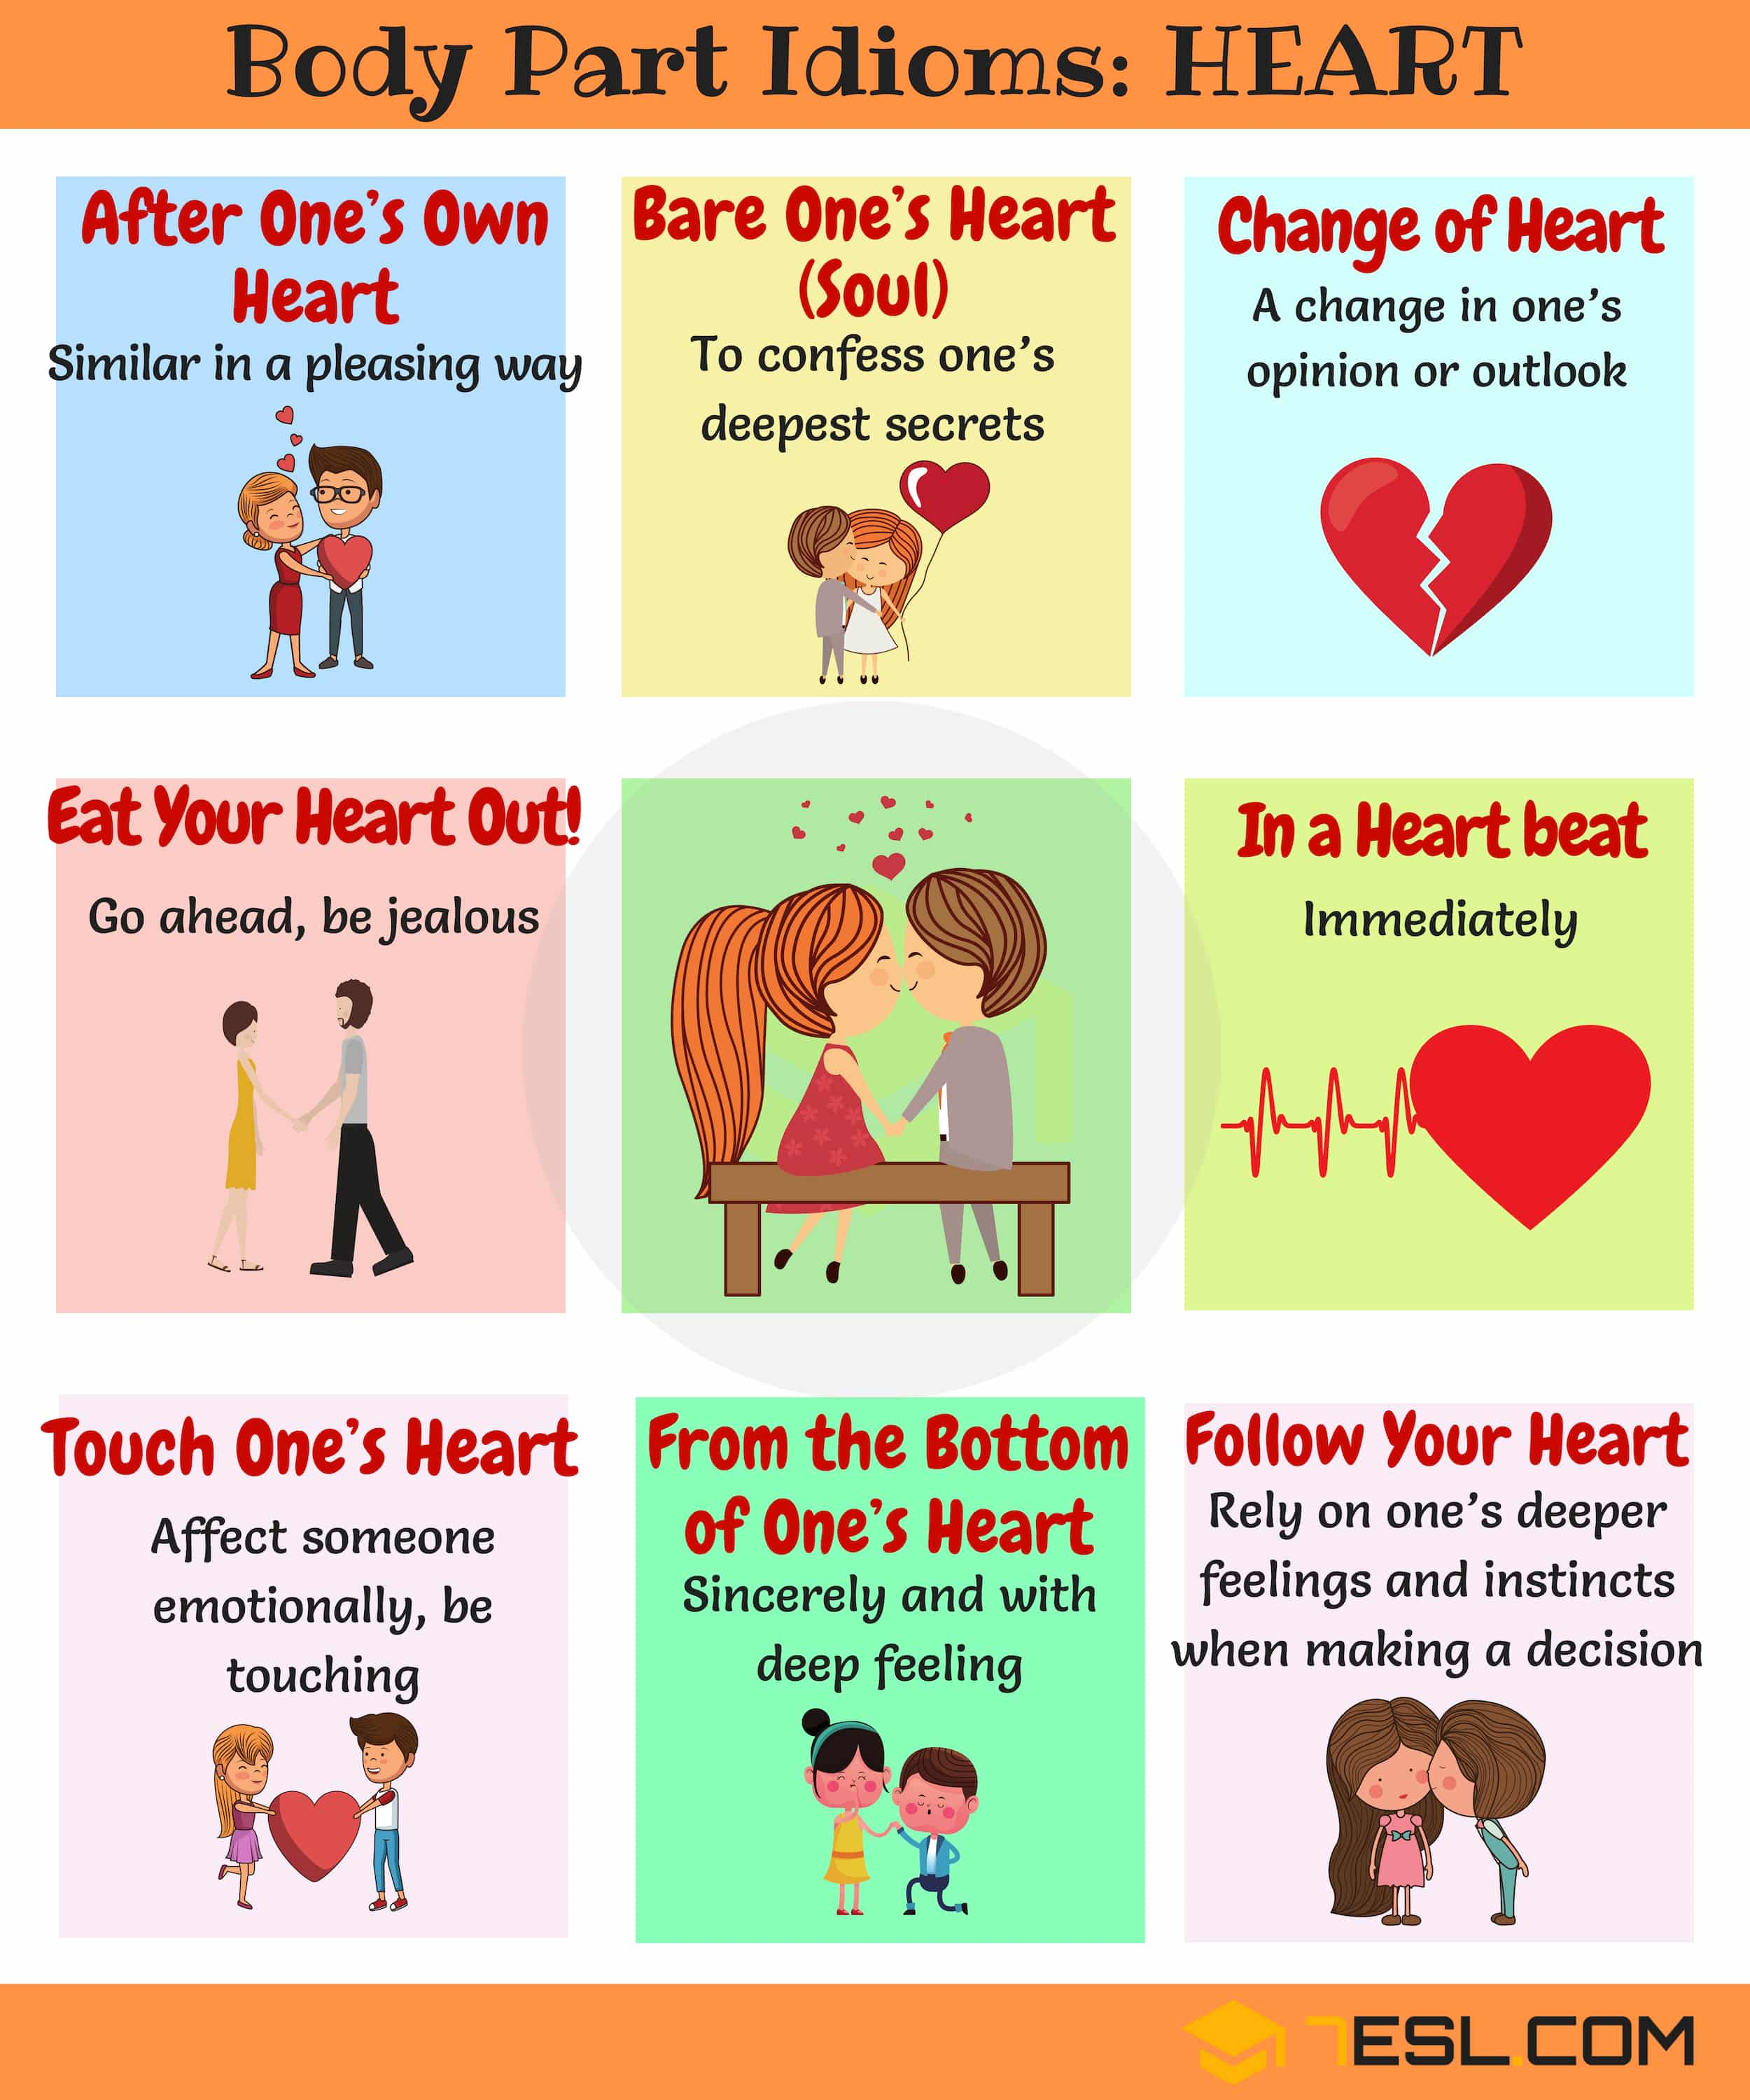 HEART Idioms: Common Idioms with Heart in English